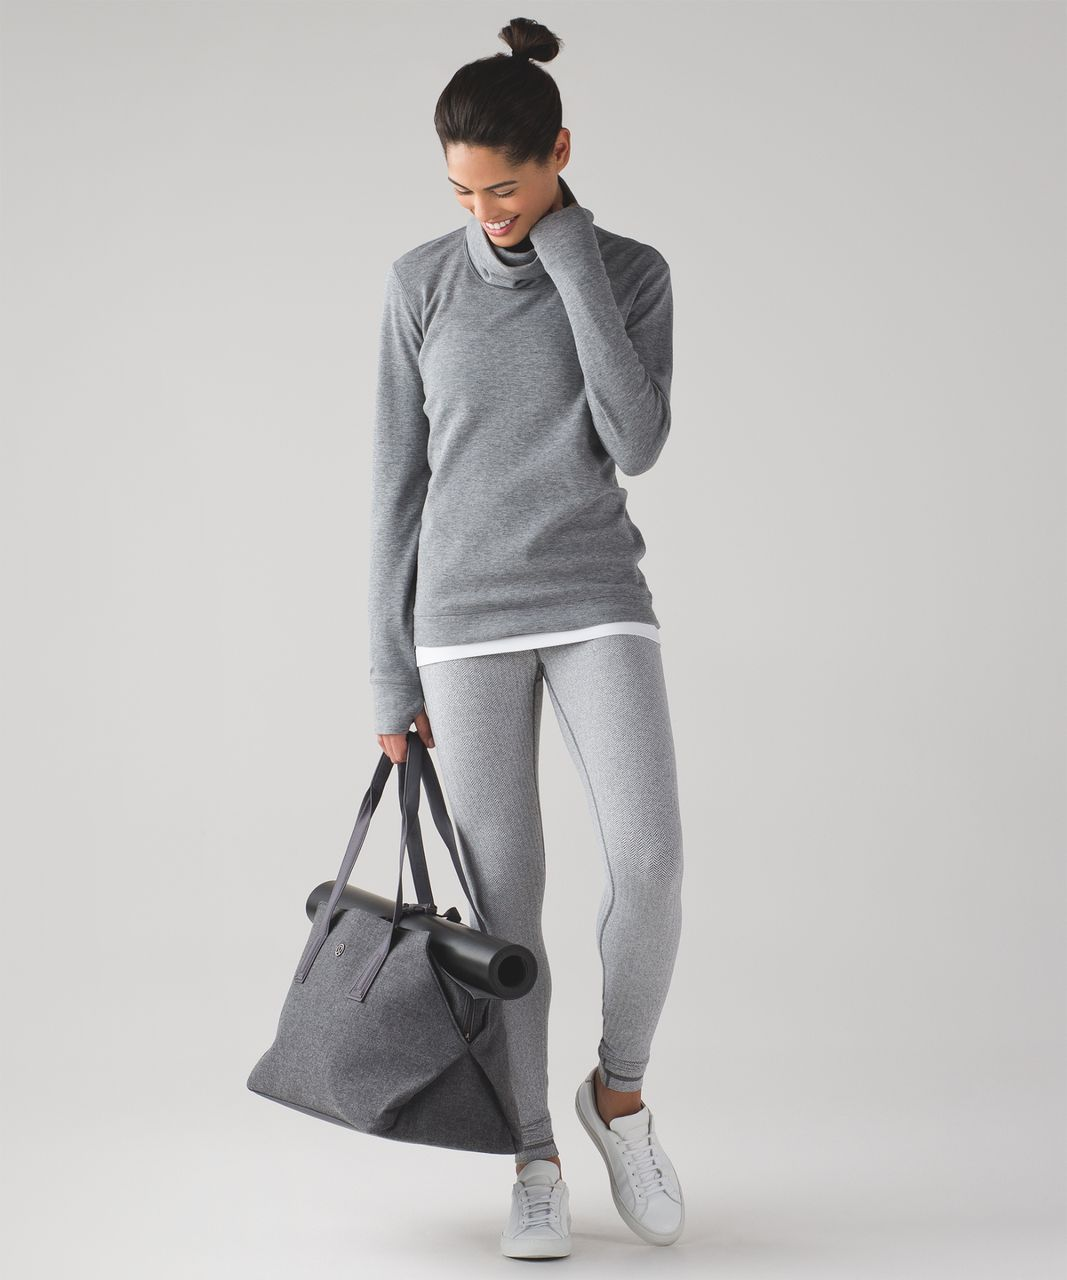 Lululemon Wunder Under Pant - Heathered Herringbone Heathered Black White / Black